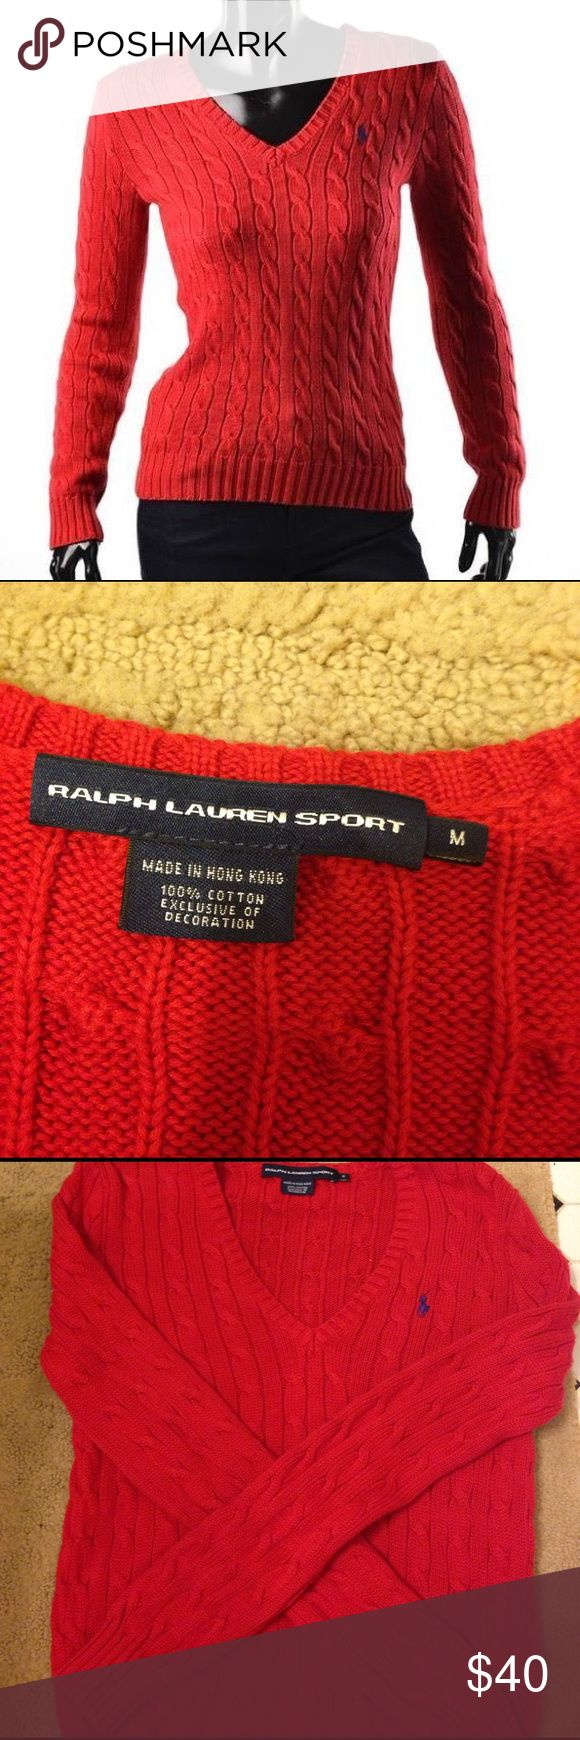 Ralph Lauren sport red chunky cable knit sweater M Beautiful Ralph Lauren Sport sweater excellent condition size medium. Only worn once. Little purple polo horse. V neck pullover style. Exactly same as first picture. Would also work for a size small. 100% cotton. Free gift; bundle for discount:) Ralph Lauren Sweaters V-Necks